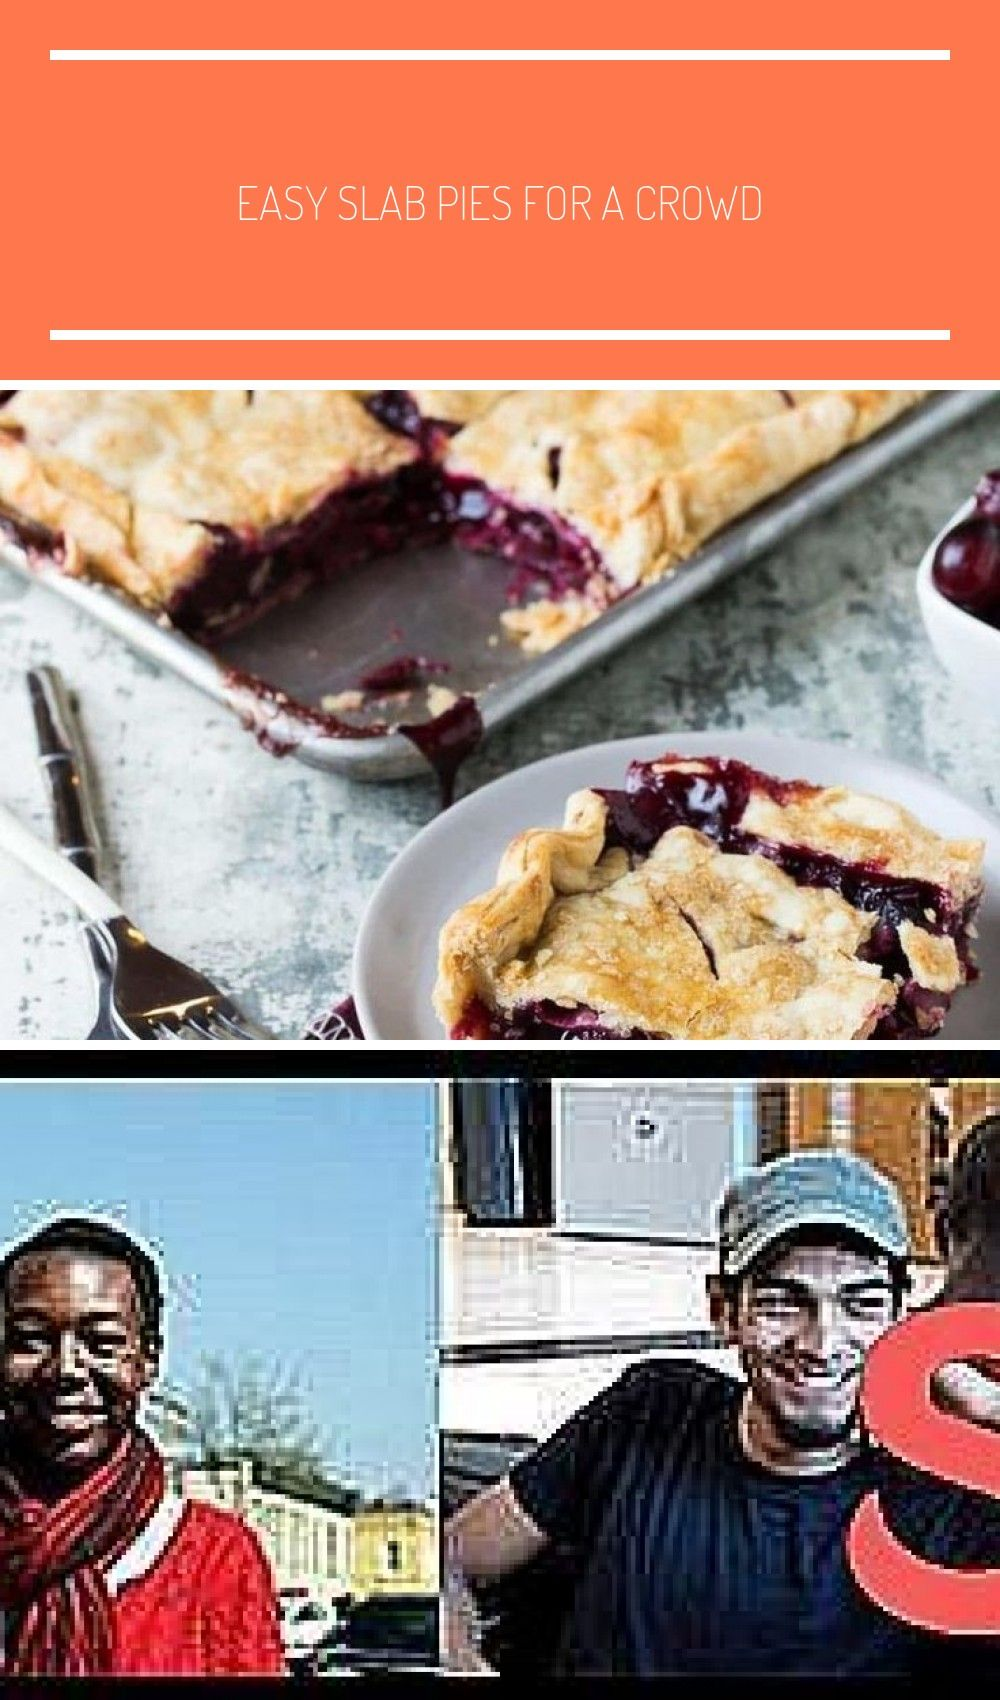 25 Easy Slab Pies For a Crowd: Cranberry Cherry Slab Pie for a crowd sheet pan Easy Slab Pies For a